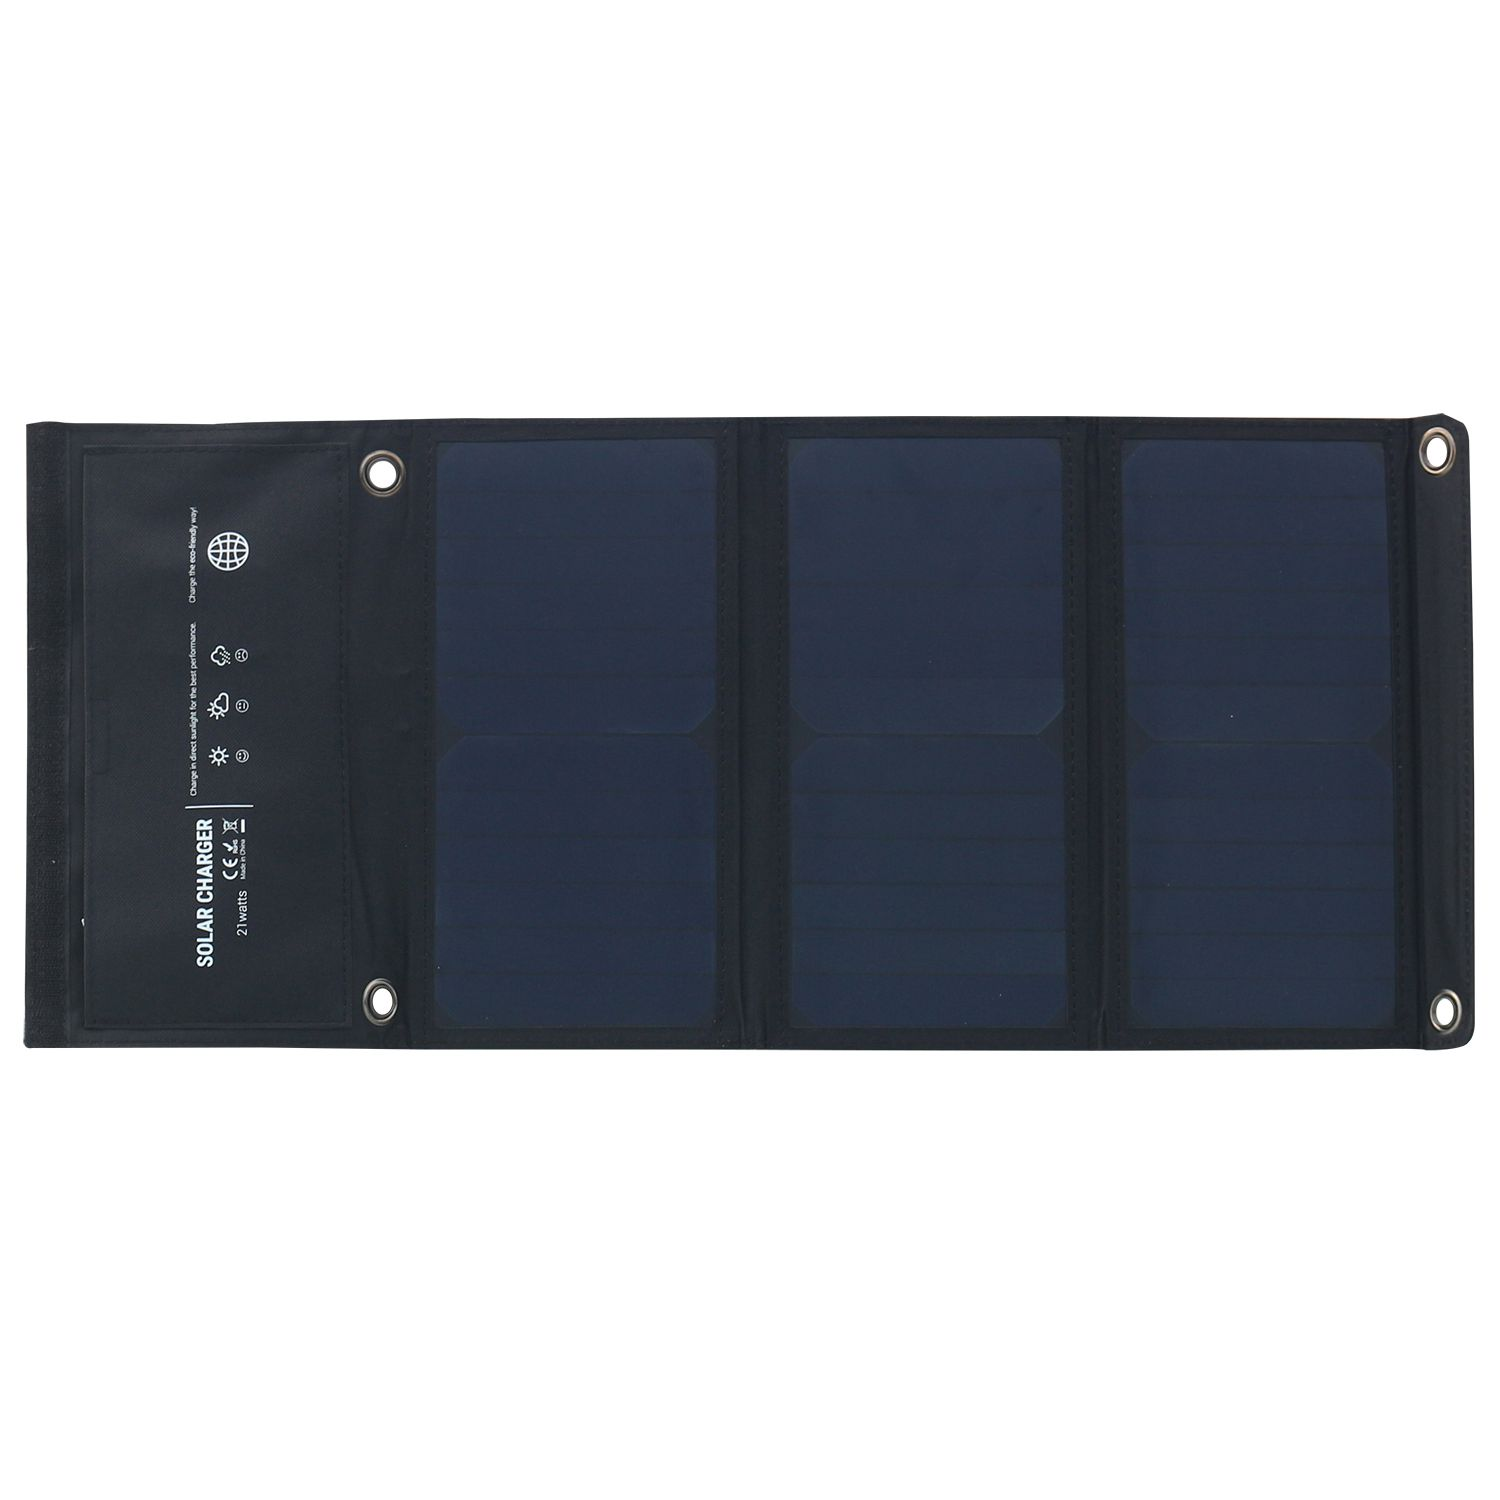 5V 21W Waterproof Solar Powered Charger Foldable Outdoor Solar Charger Dual USB Ports for iPhone 8/X/7/6s, iPad Pro/Air 2/mini5V 21W Waterproof Solar Powered Charger Foldable Outdoor Solar Charger Dual USB Ports for iPhone 8/X/7/6s, iPad Pro/Air 2/mini